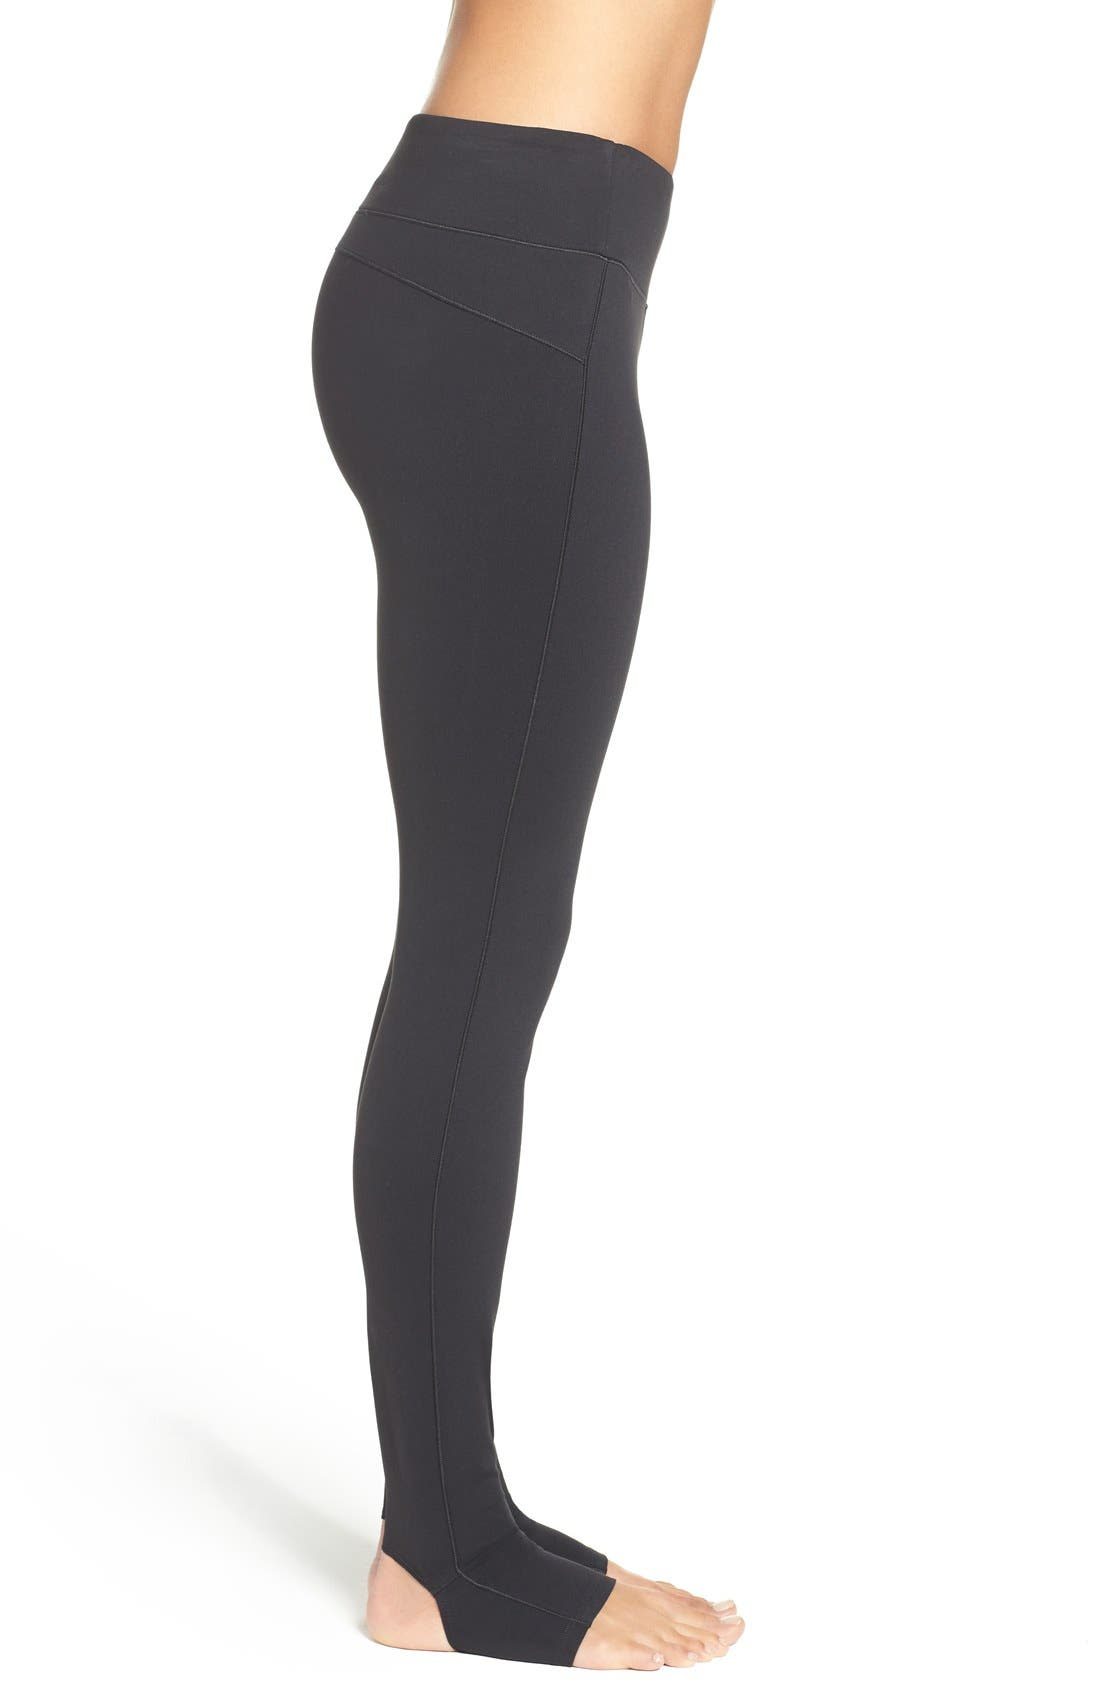 Foiled Stirrup Tights,                             Alternate thumbnail 3, color,                             001